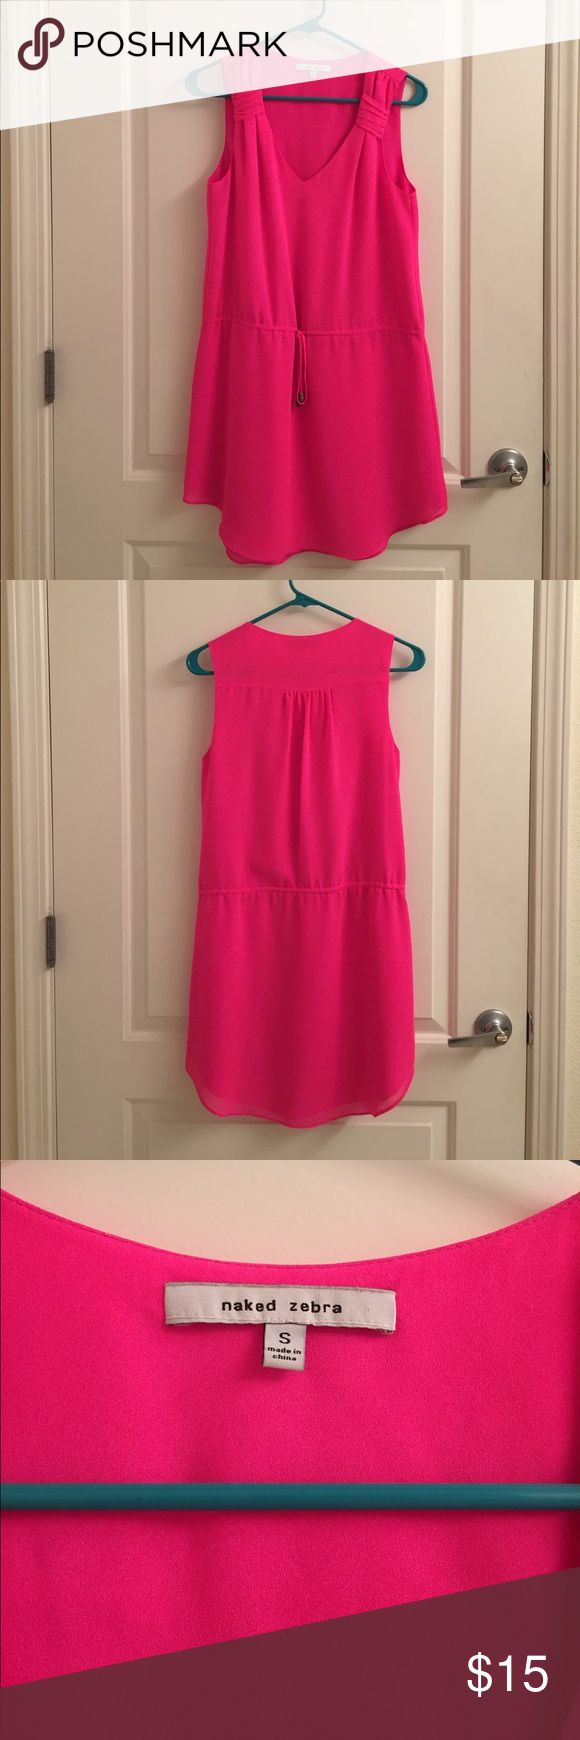 Naked Zebra Hot Pink Drawstring Dress Naked Zebra pink drawstring dress, small in size perfect for date night, day time, or going out falls above the knees. Great detail on straps Naked Zebra Dresses Mini